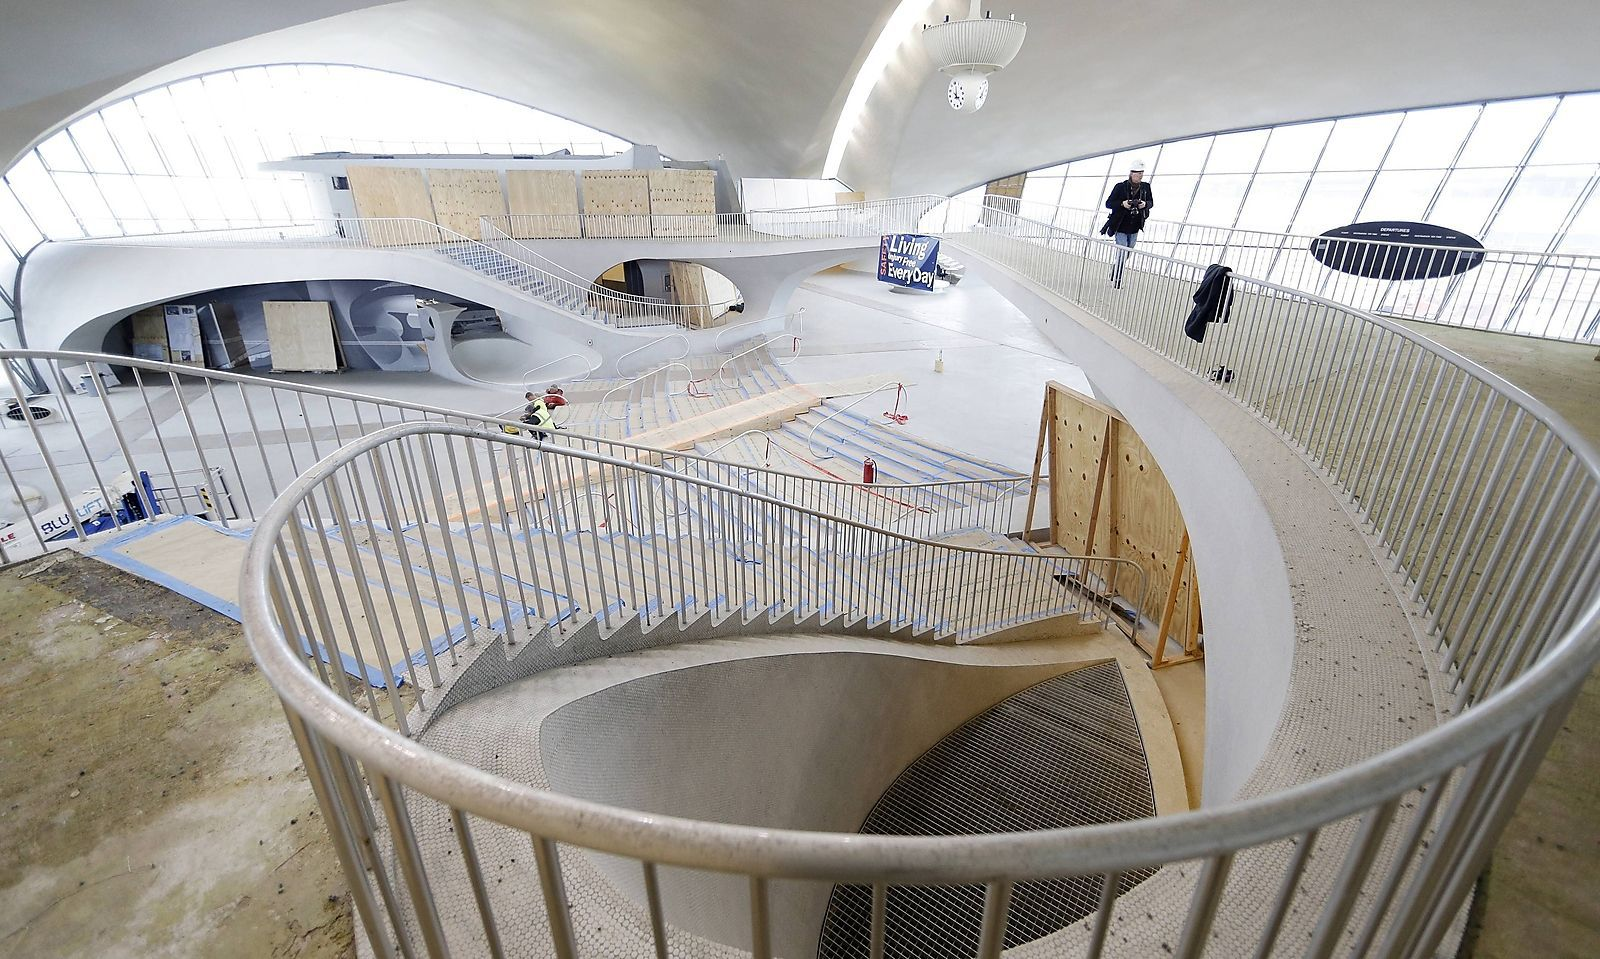 Sights of the old TWA Terminal are viewed by members of the press at a press tour of the soon to be